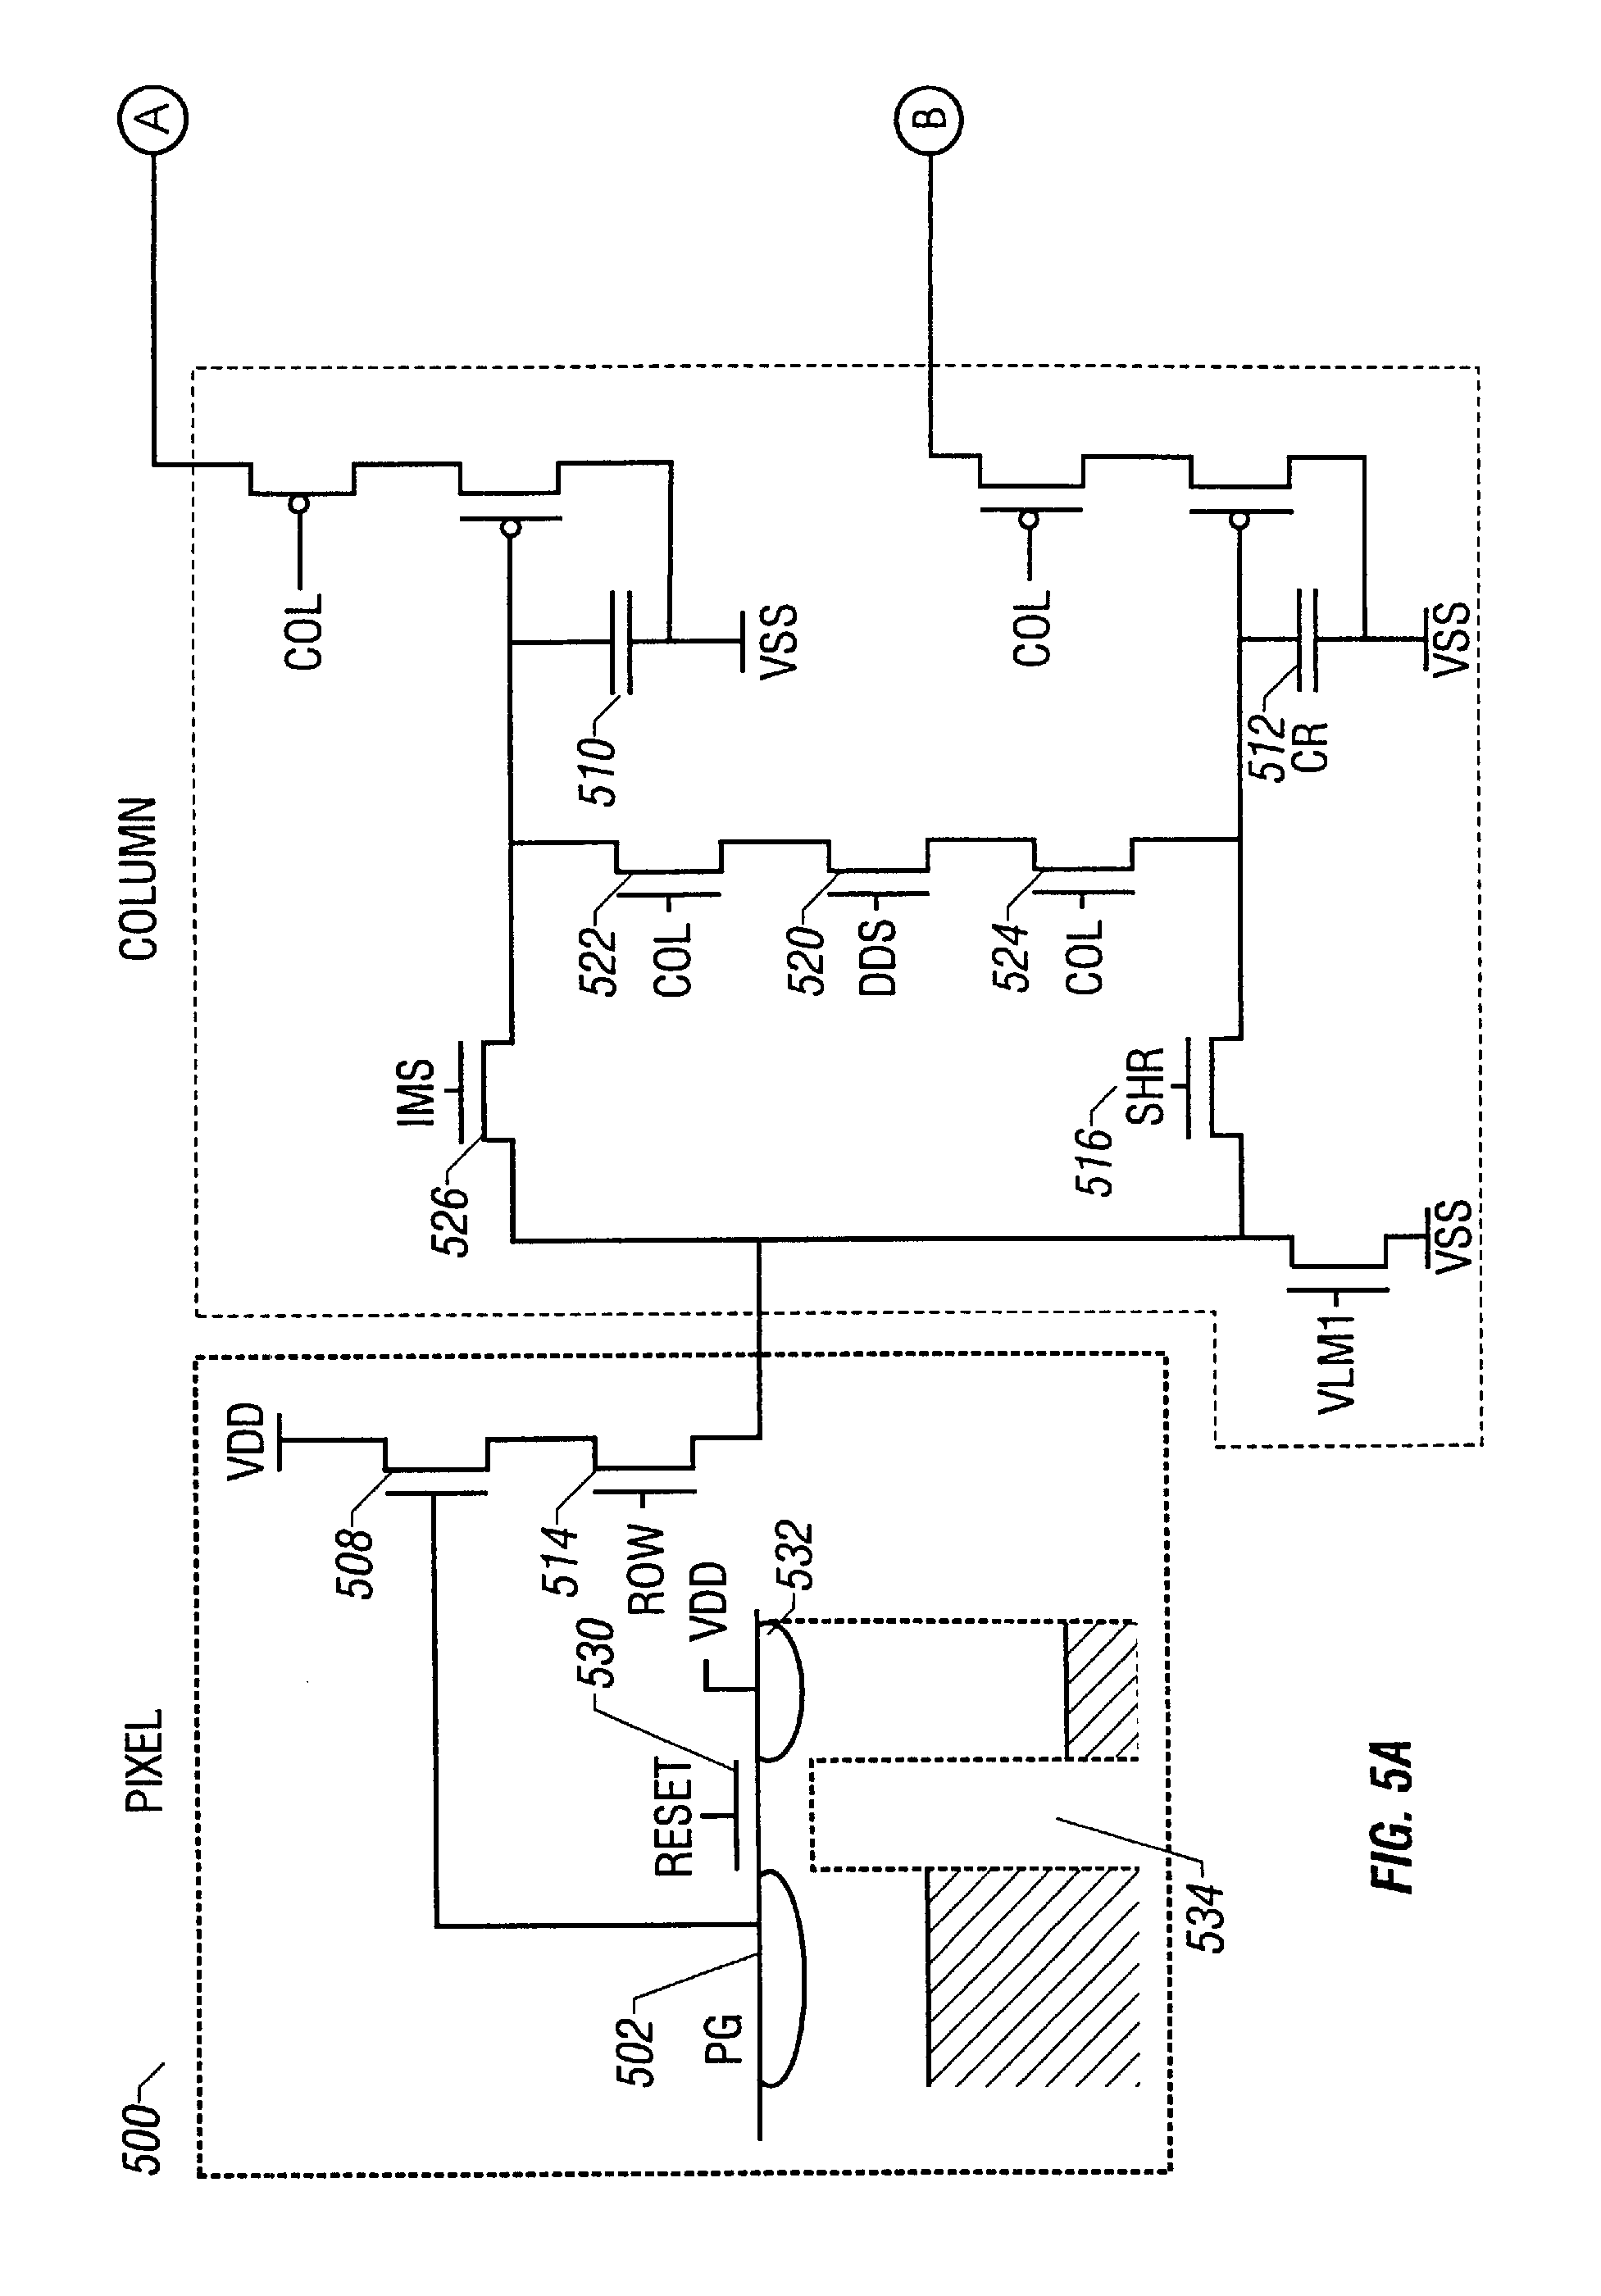 Patent Re42974e1 Circuit Diagram Basic The Special Chip Driving High Fidelity Litigations